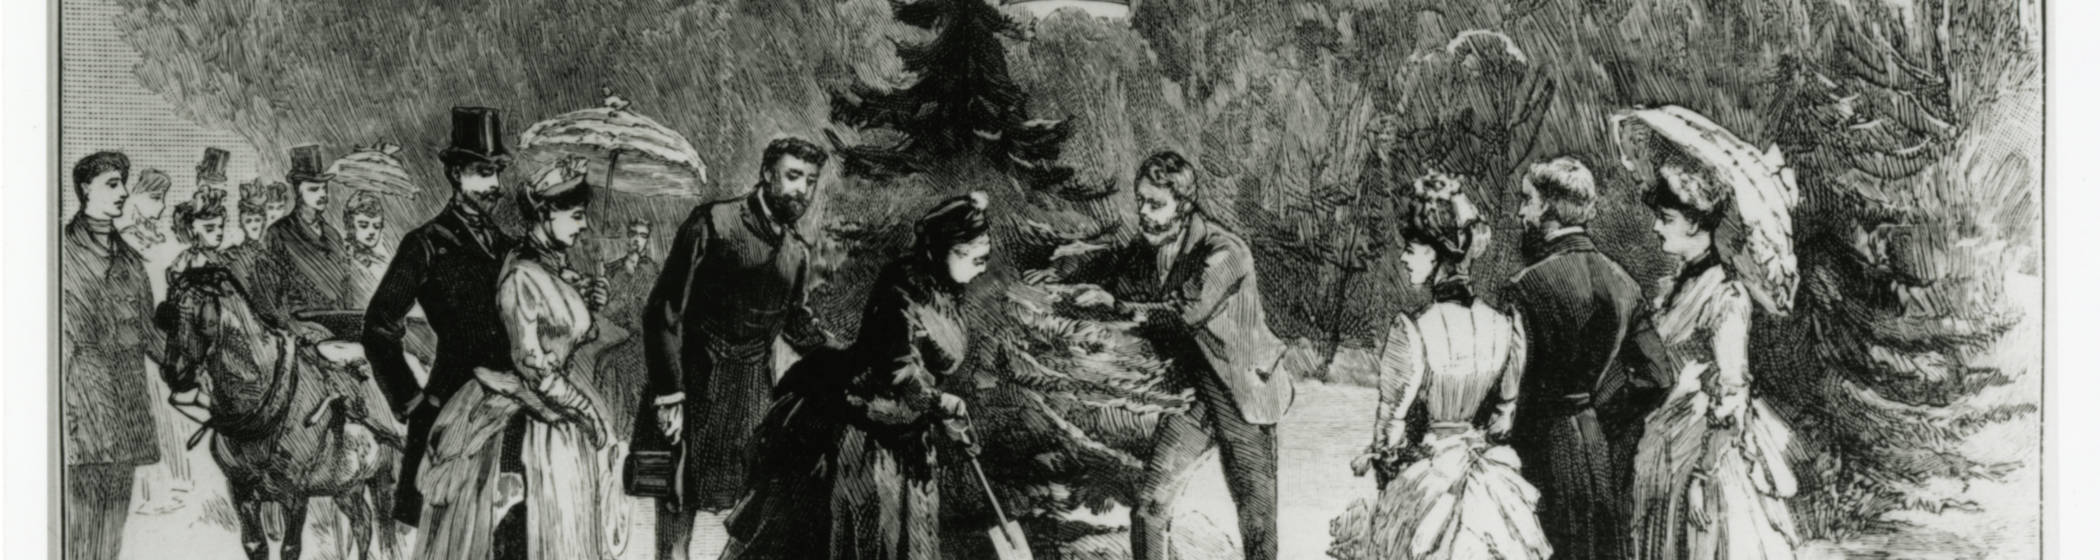 Queen Victoria planting a tree at Waddesdon